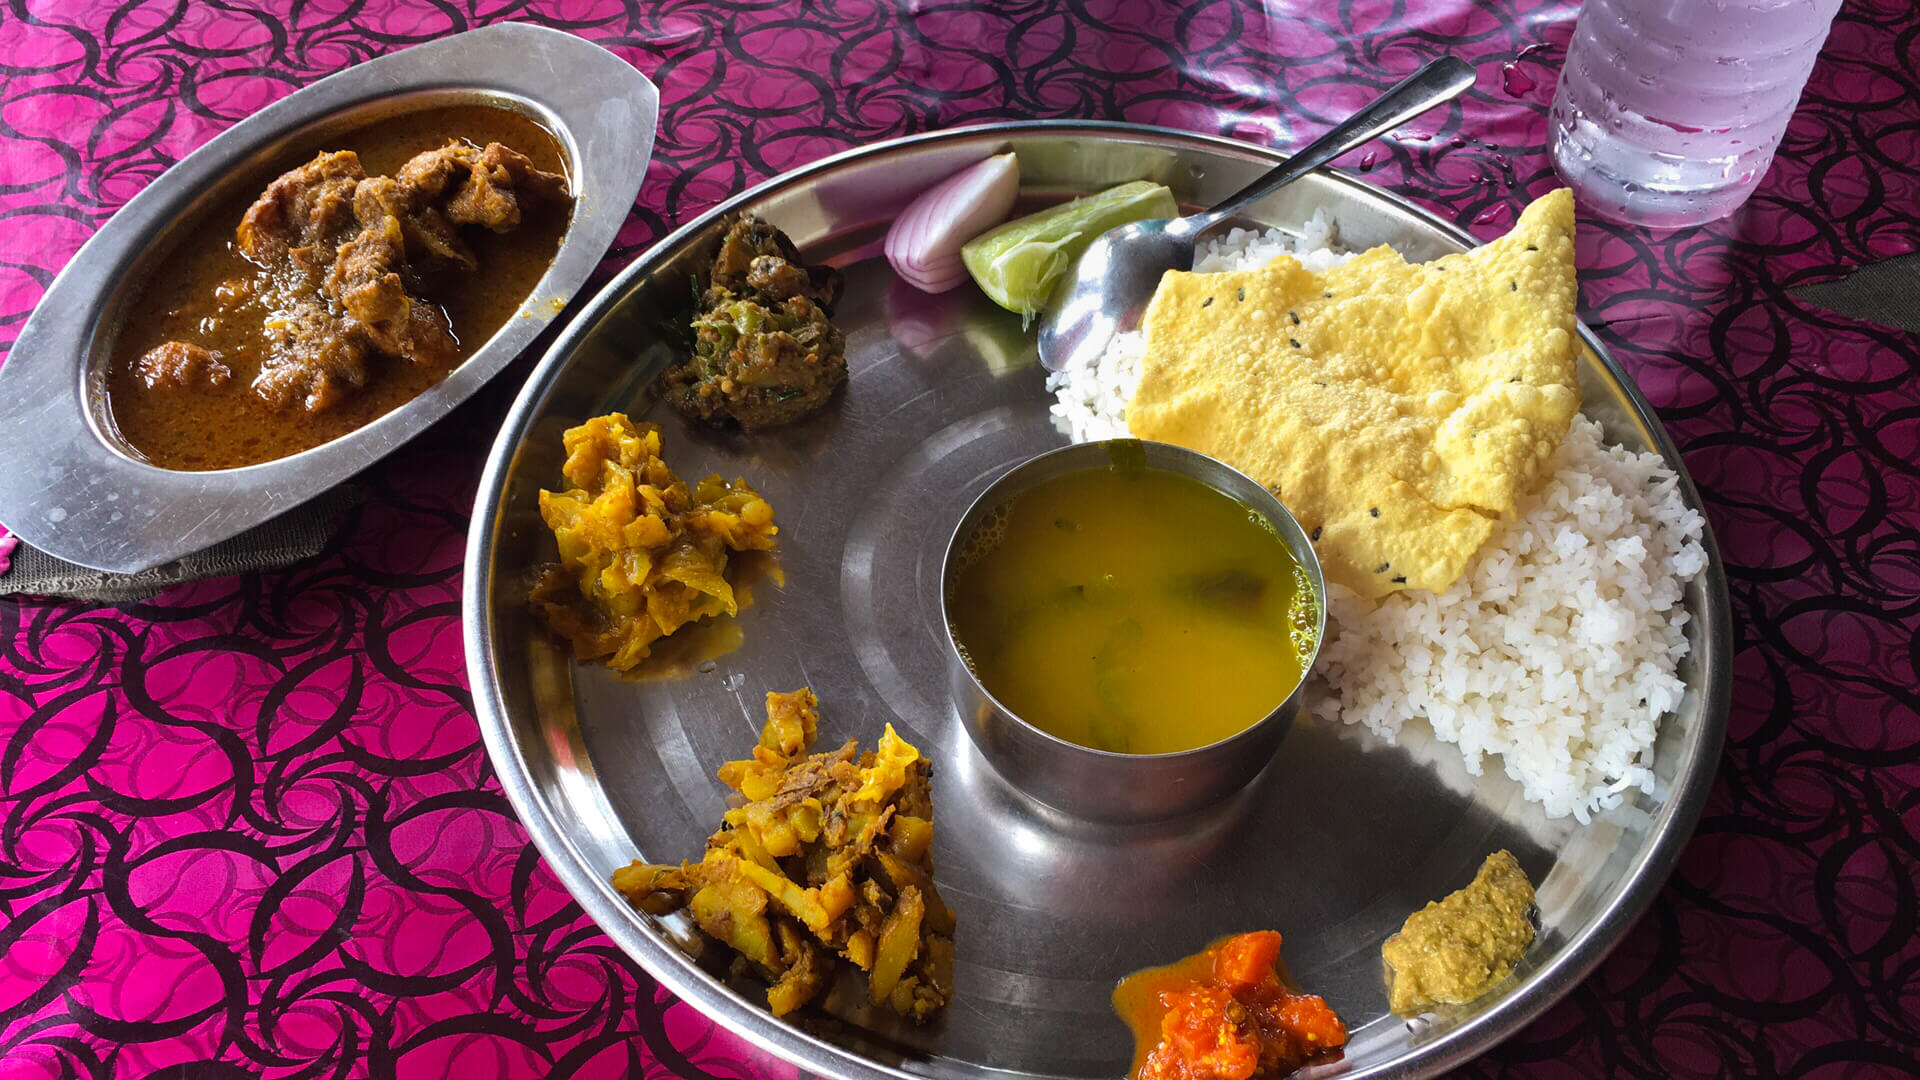 A large plate of India food